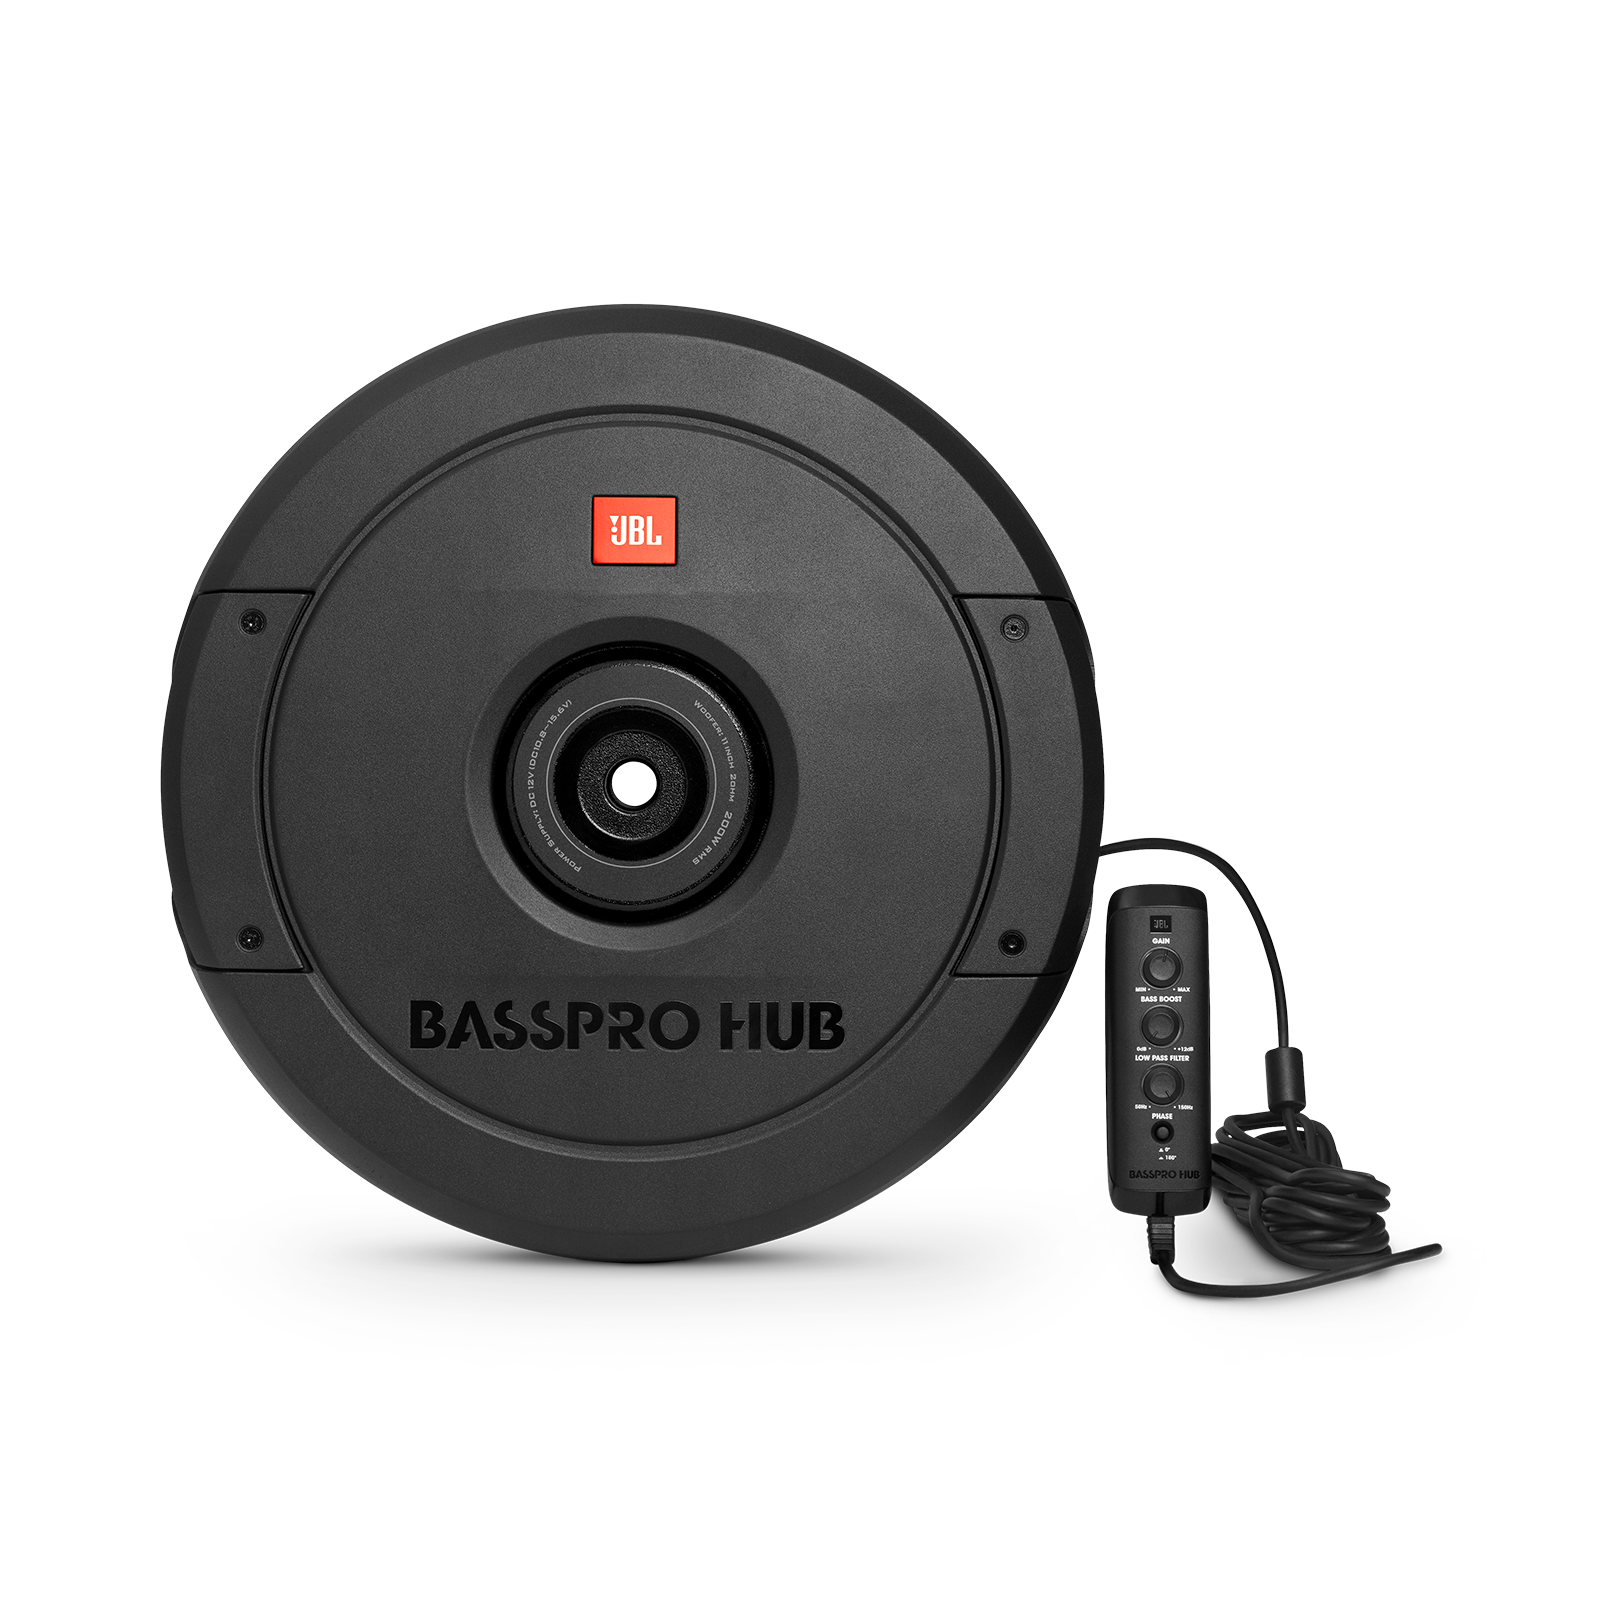 "JBL BassPro Hub - Black - 11"" (279mm) Spare tire subwoofer with built-in 200W RMS amplifier with remote control. - Hero"